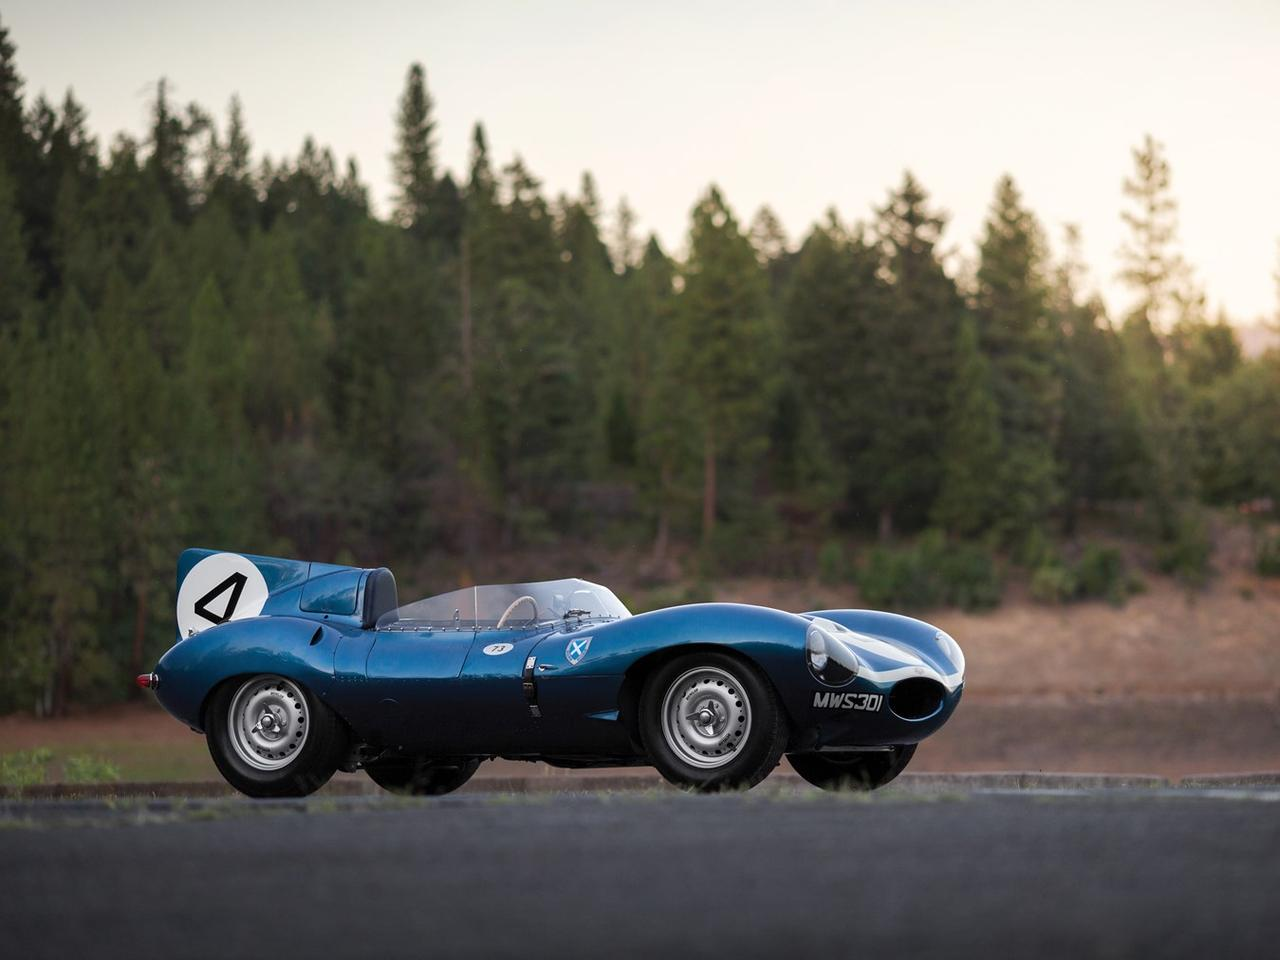 The D-Type first hit the track in 1954